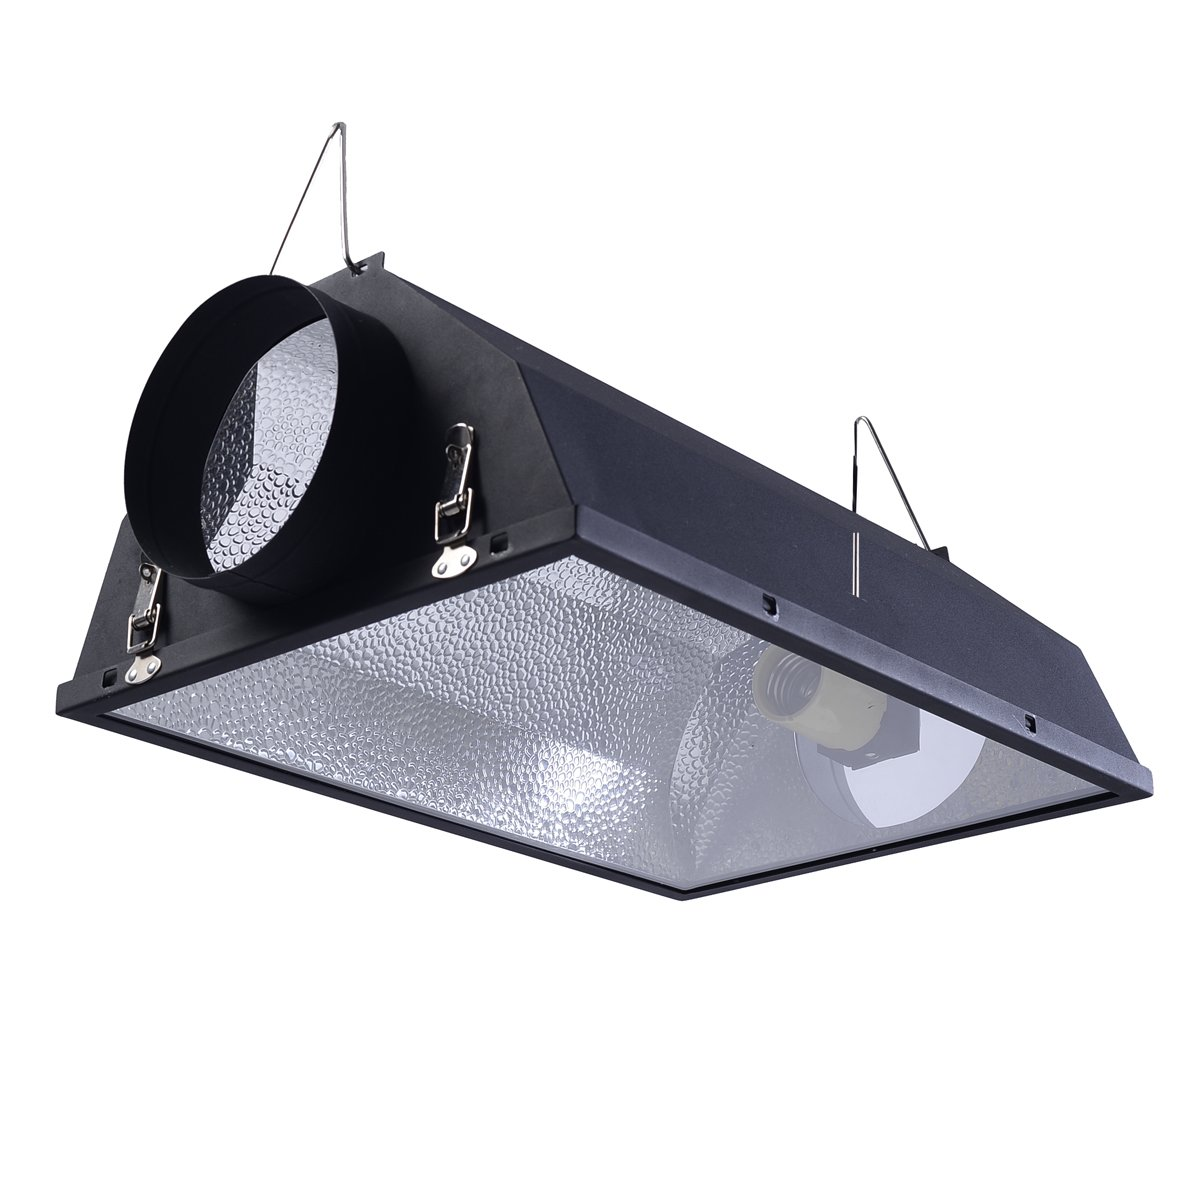 Giantex 6'' Air Cooled Hood Reflector Hydroponics Light Grow Hydroponic w/Glass Cover